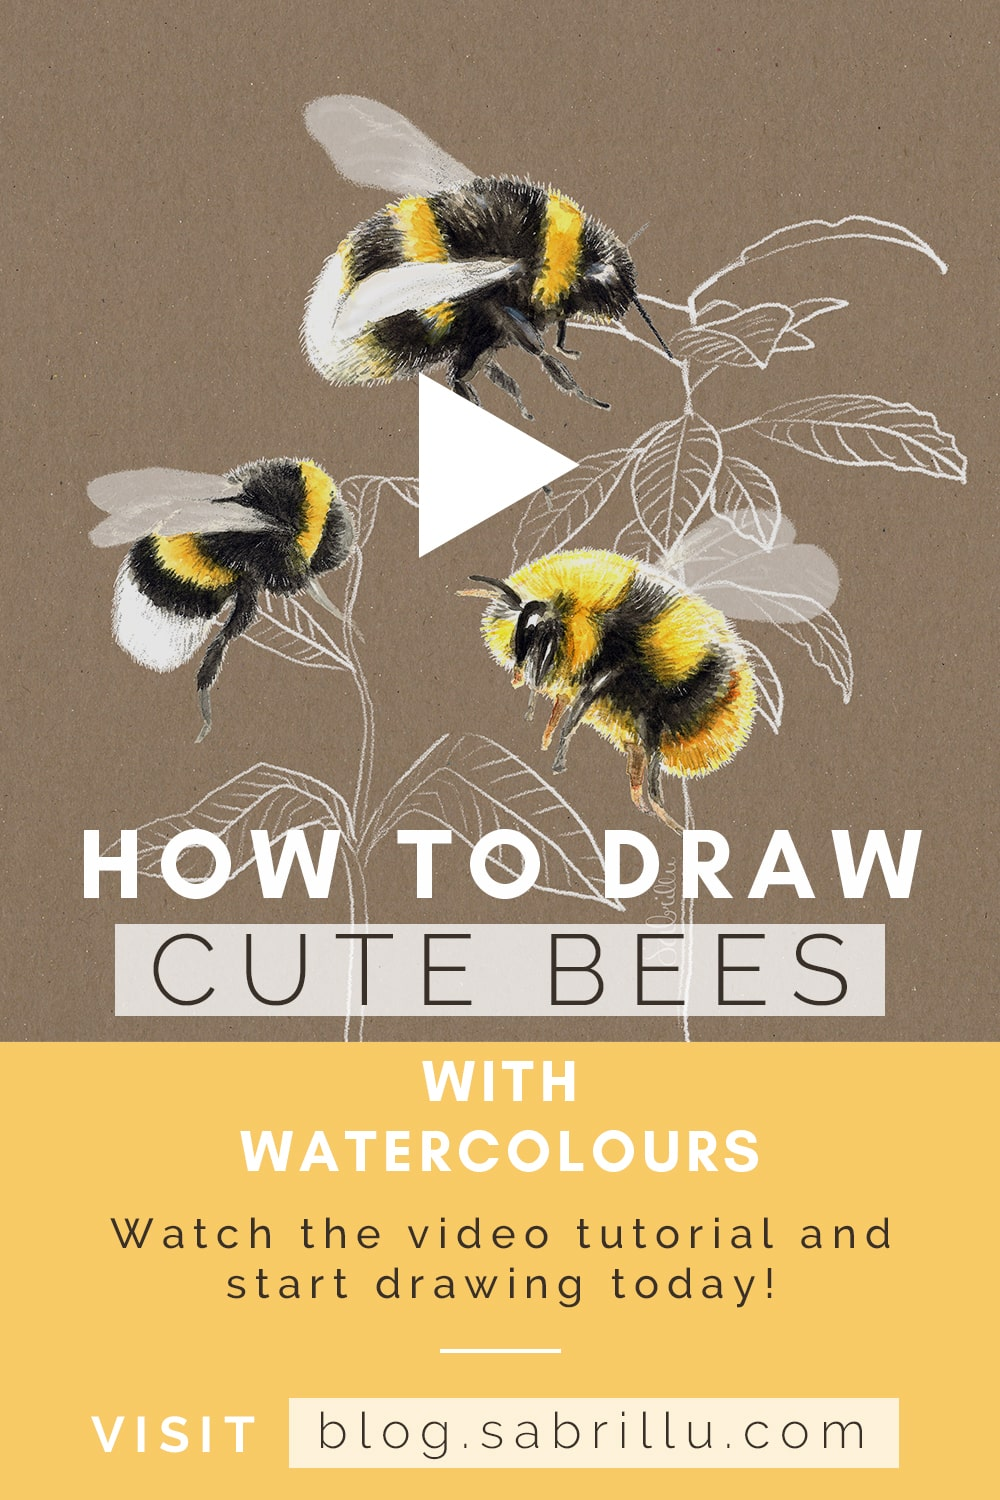 How to draw bumble bees with watercolours - Sabrillu